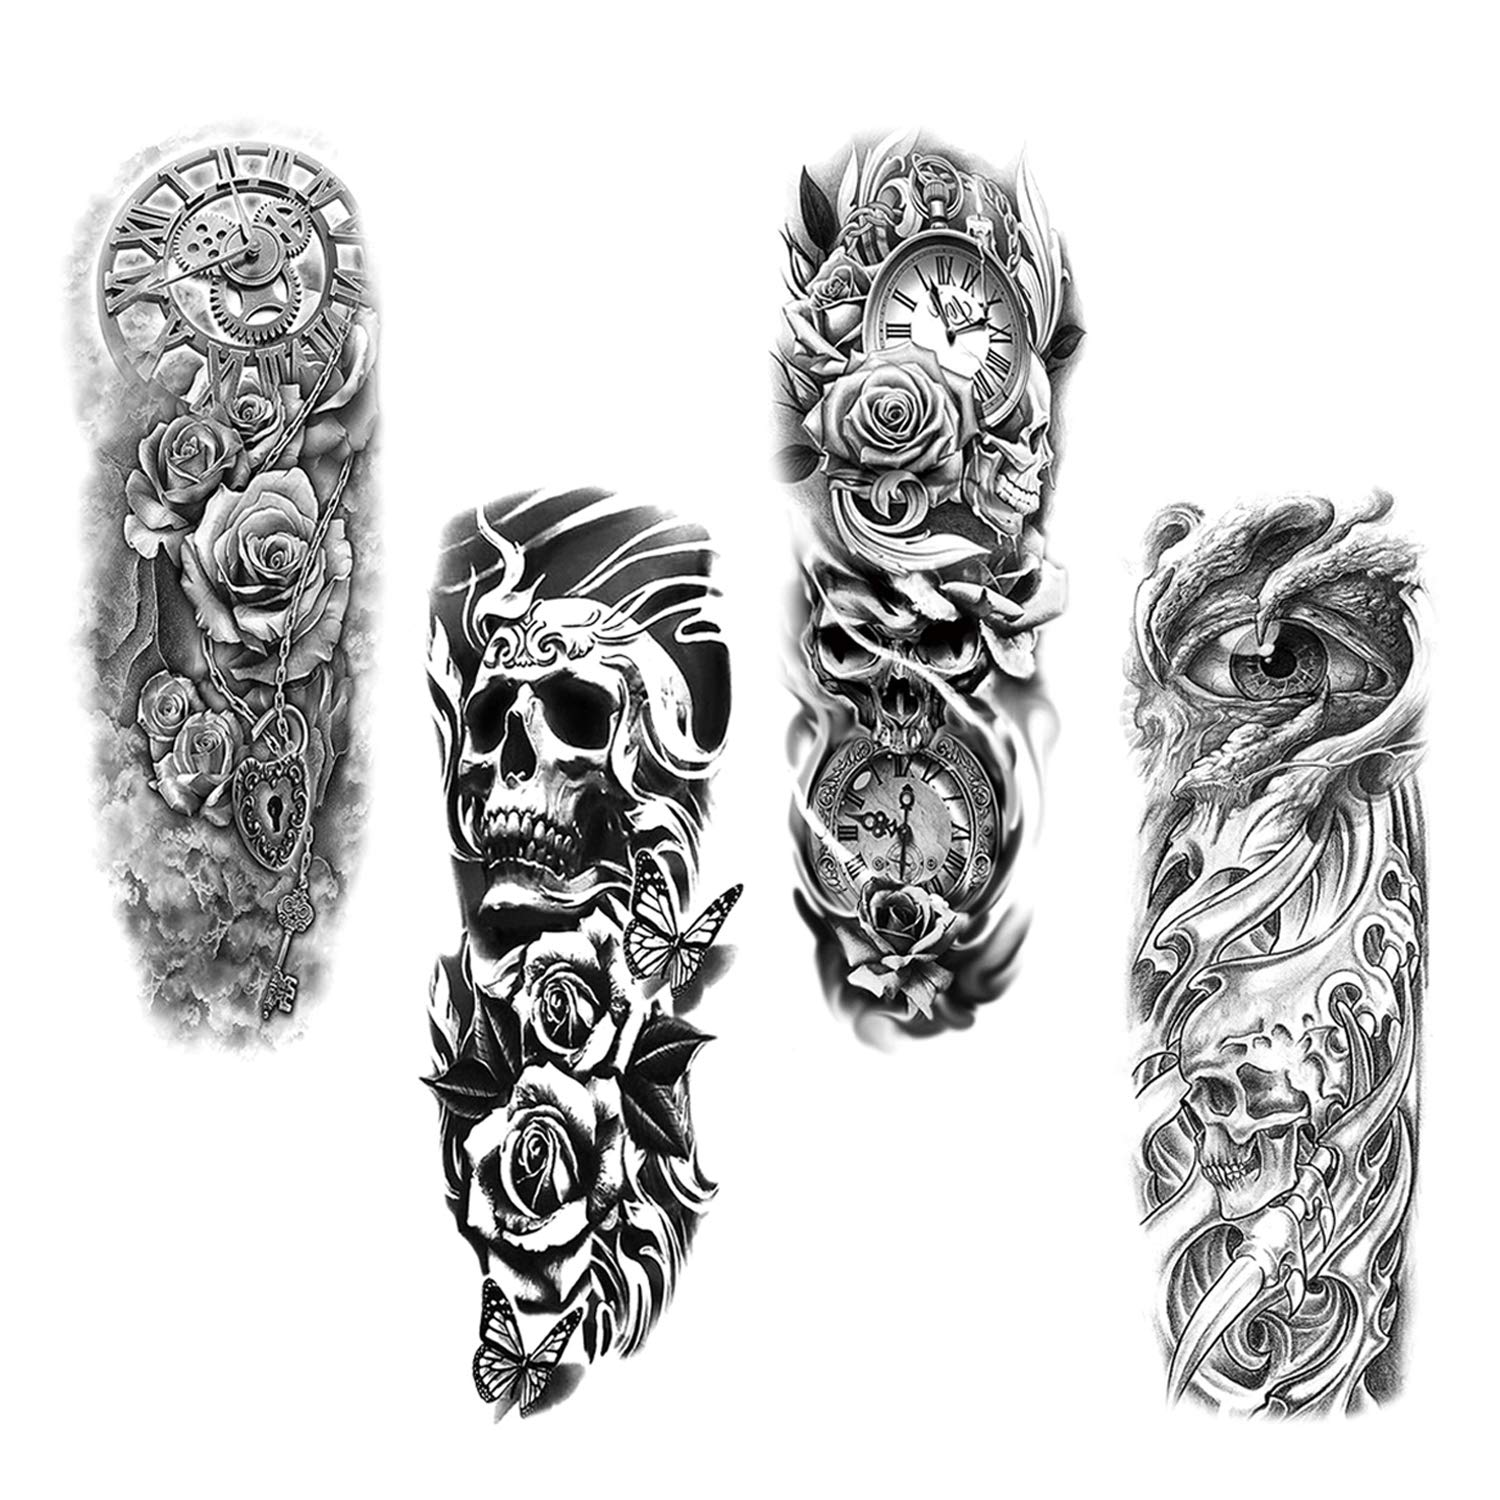 HOWAF Full Arm Temporary Tattoo, 4 Sheets Large Size Temporary Tattoo Transfer Stickers Black Tattoo Sleeve Rose Skull Fake Arm Tattoos for Man, Women, Waterproof, Removable, Realistic